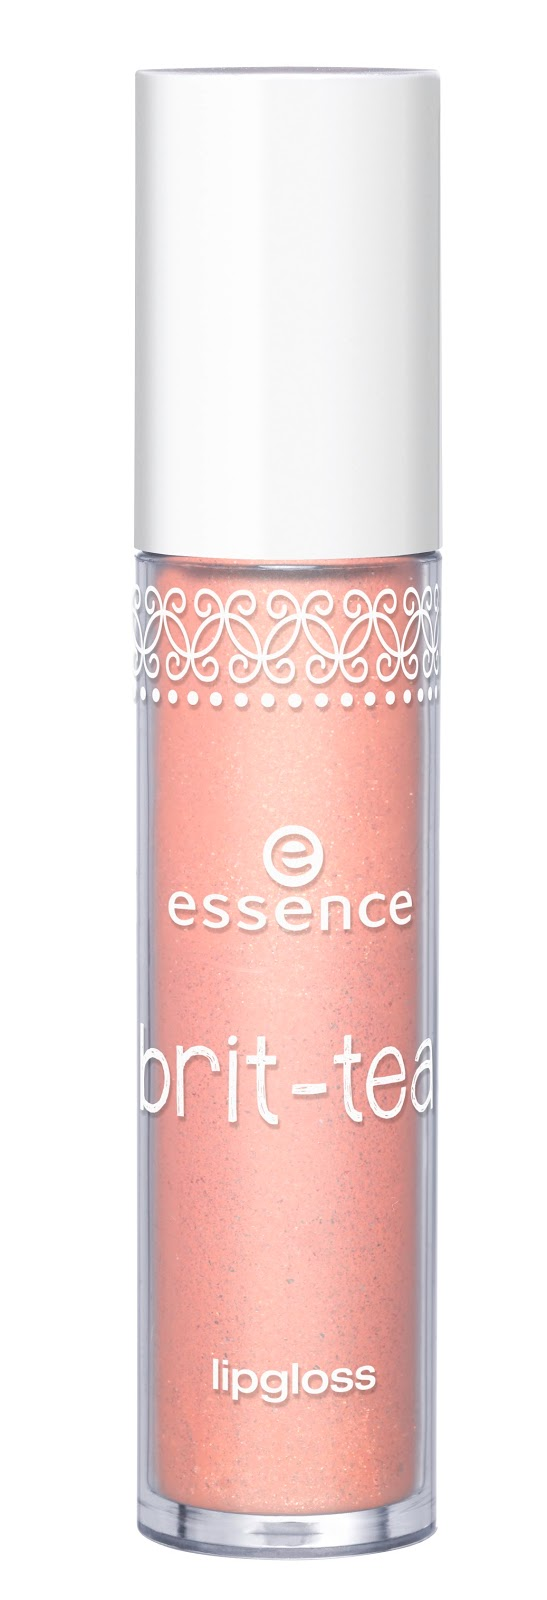 essence brit tea lipgloss 01 02